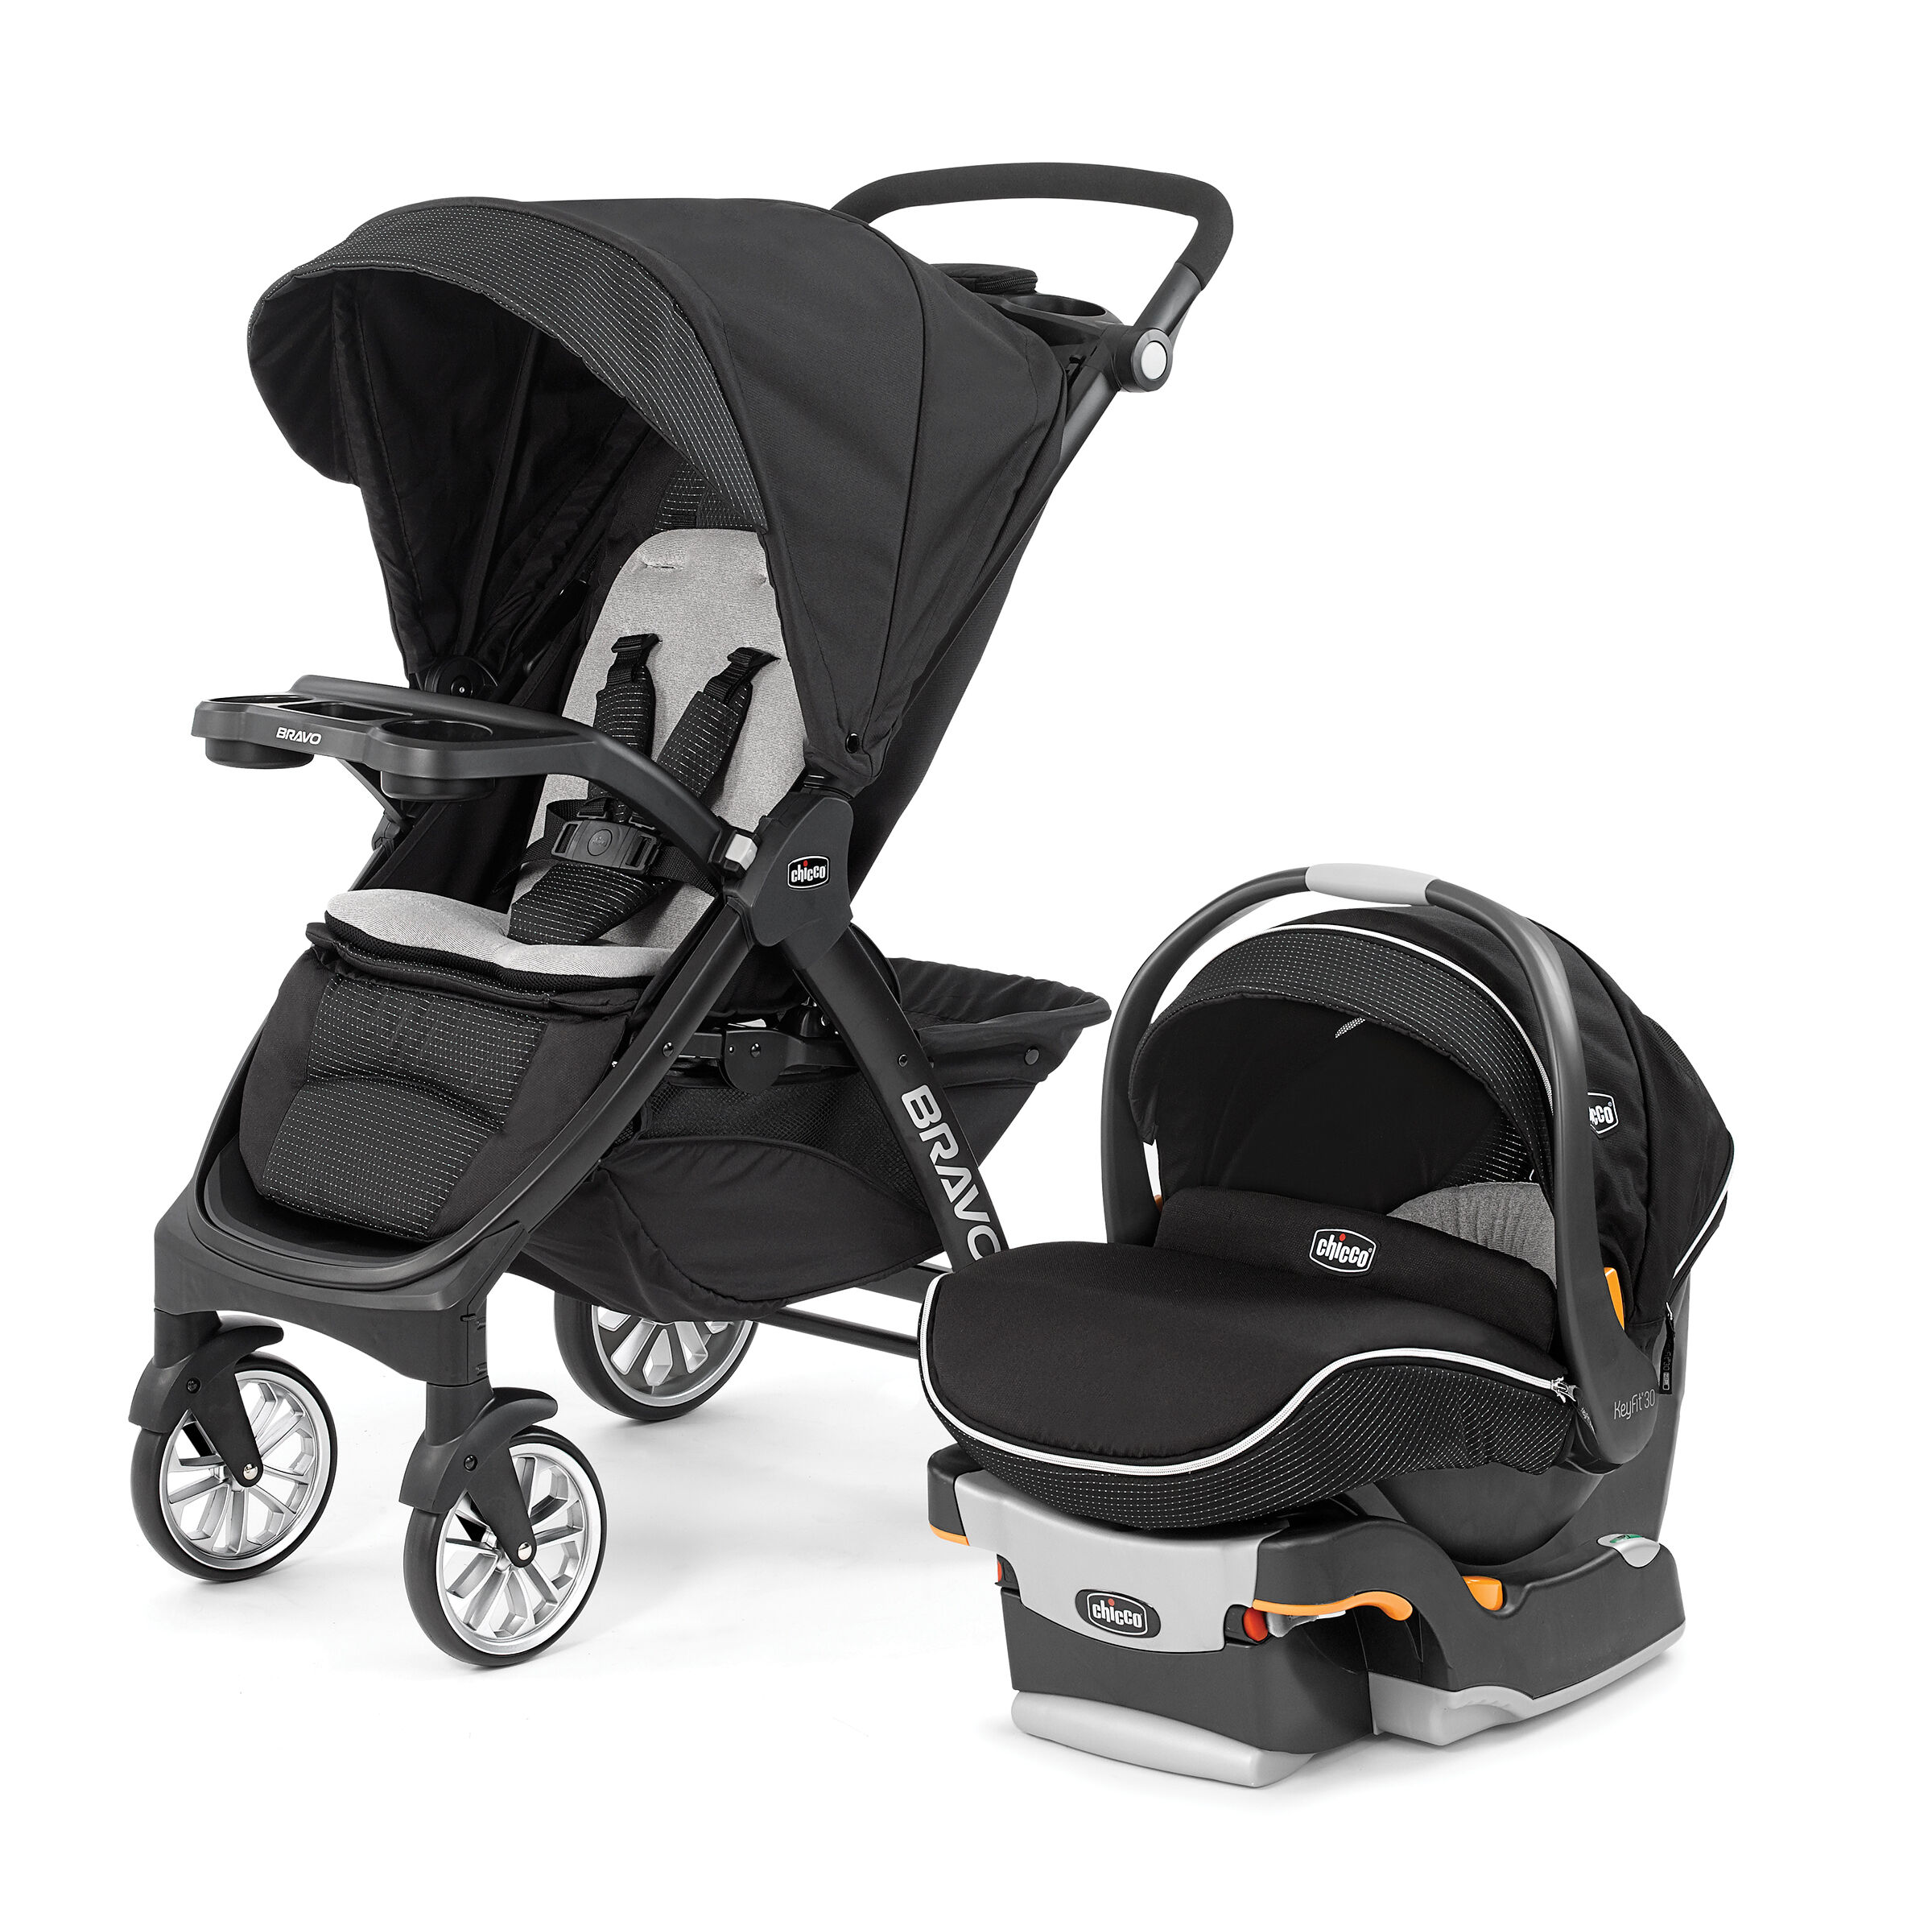 Travel System With Convertible Car Seat Bravo Le Trio Travel System Genesis Chicco